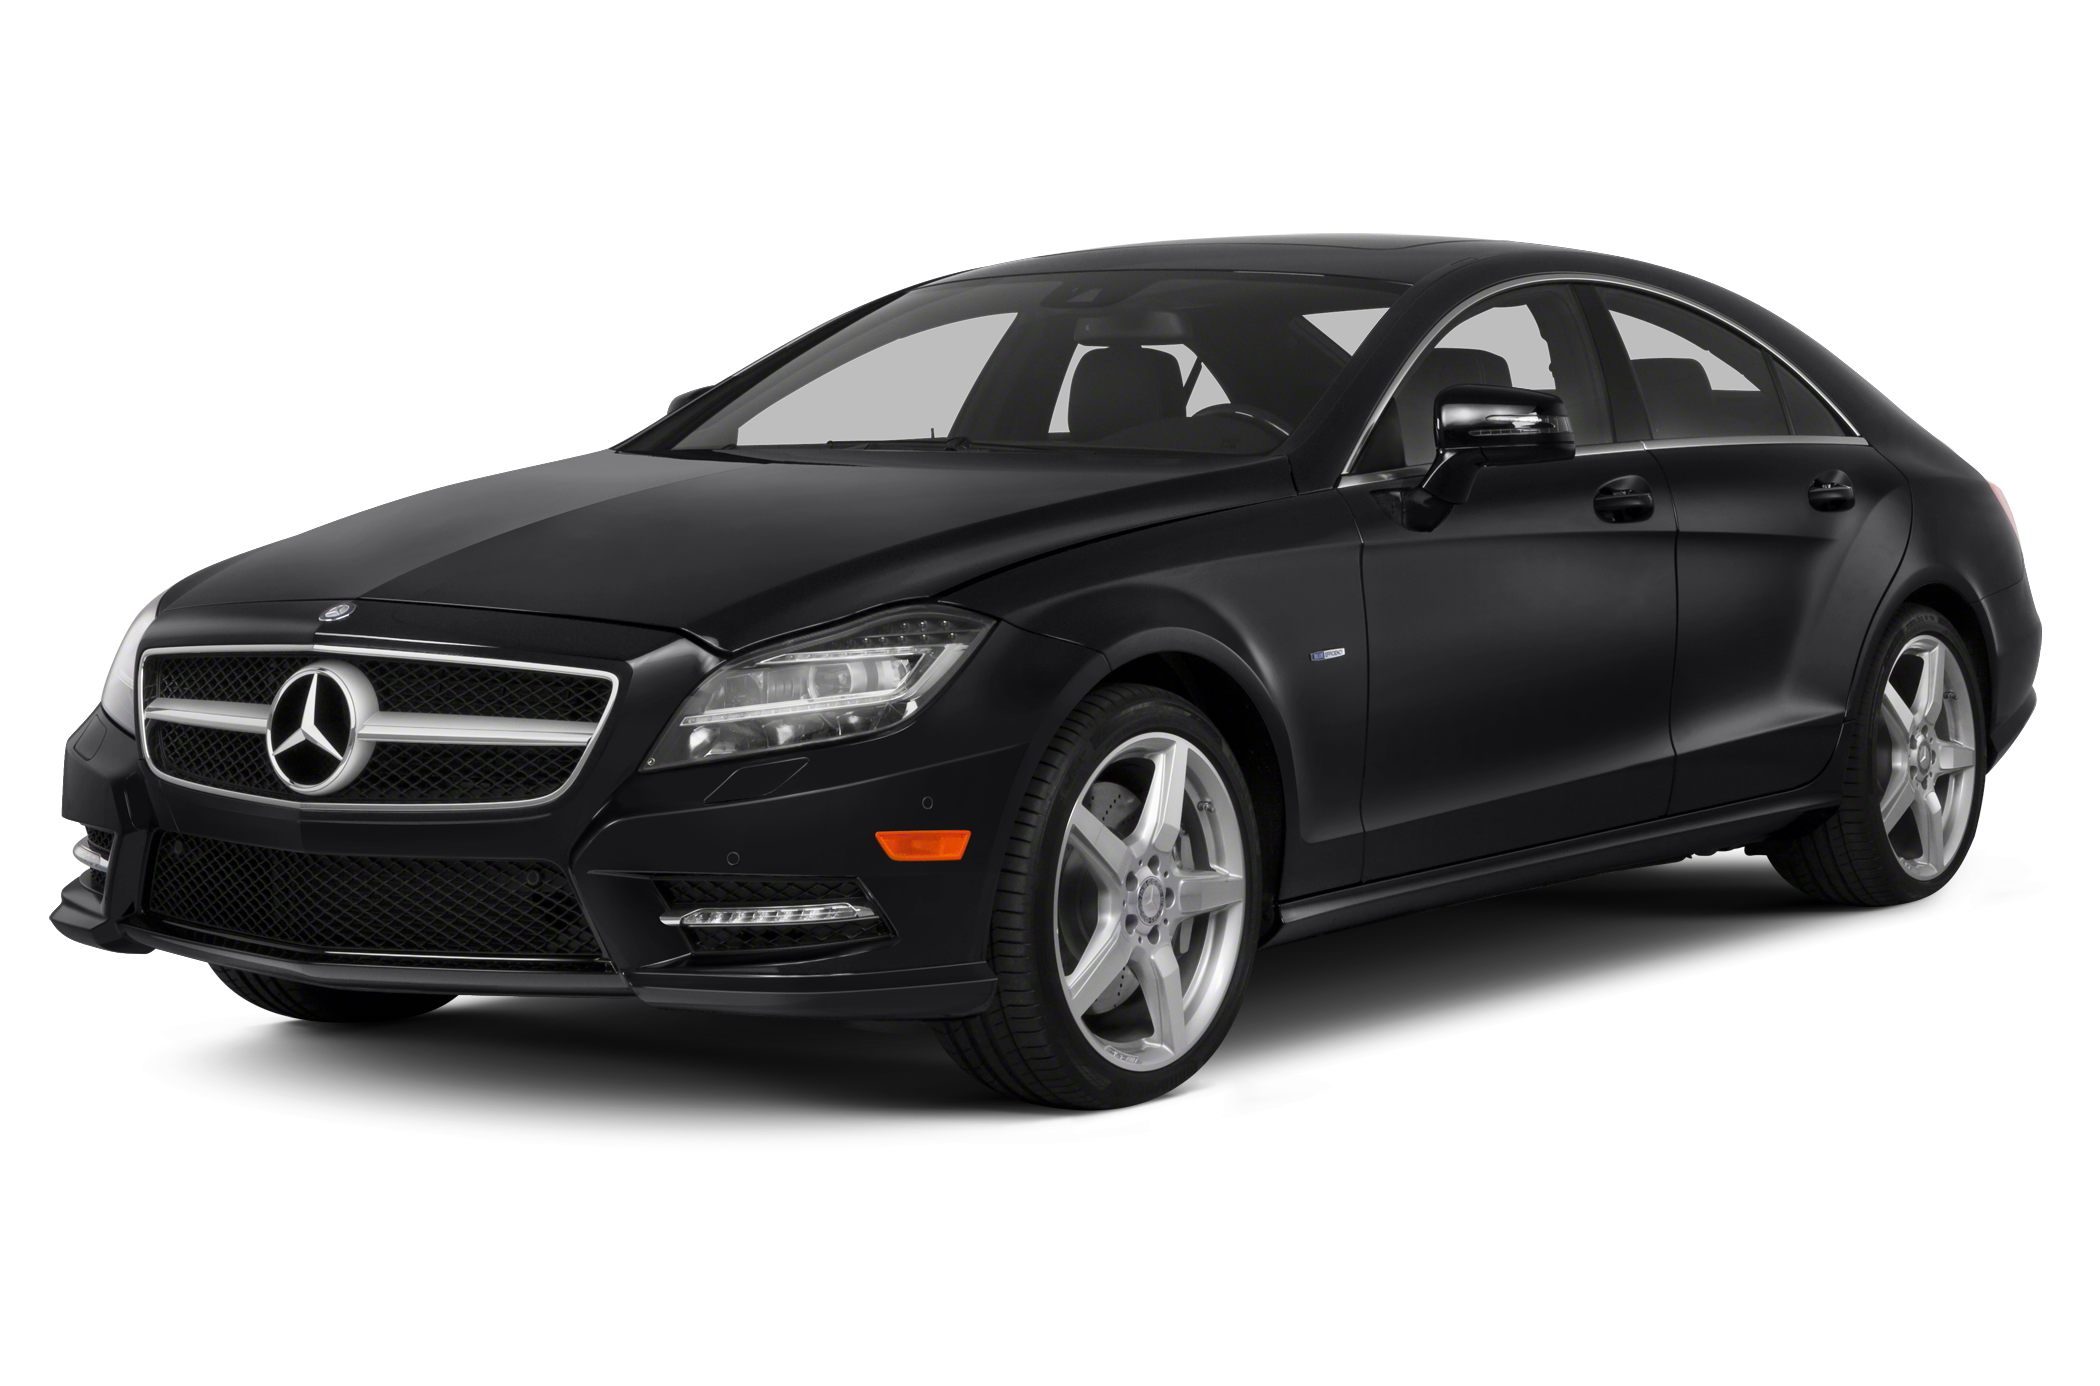 2012 Mercedes-Benz CLS-Class